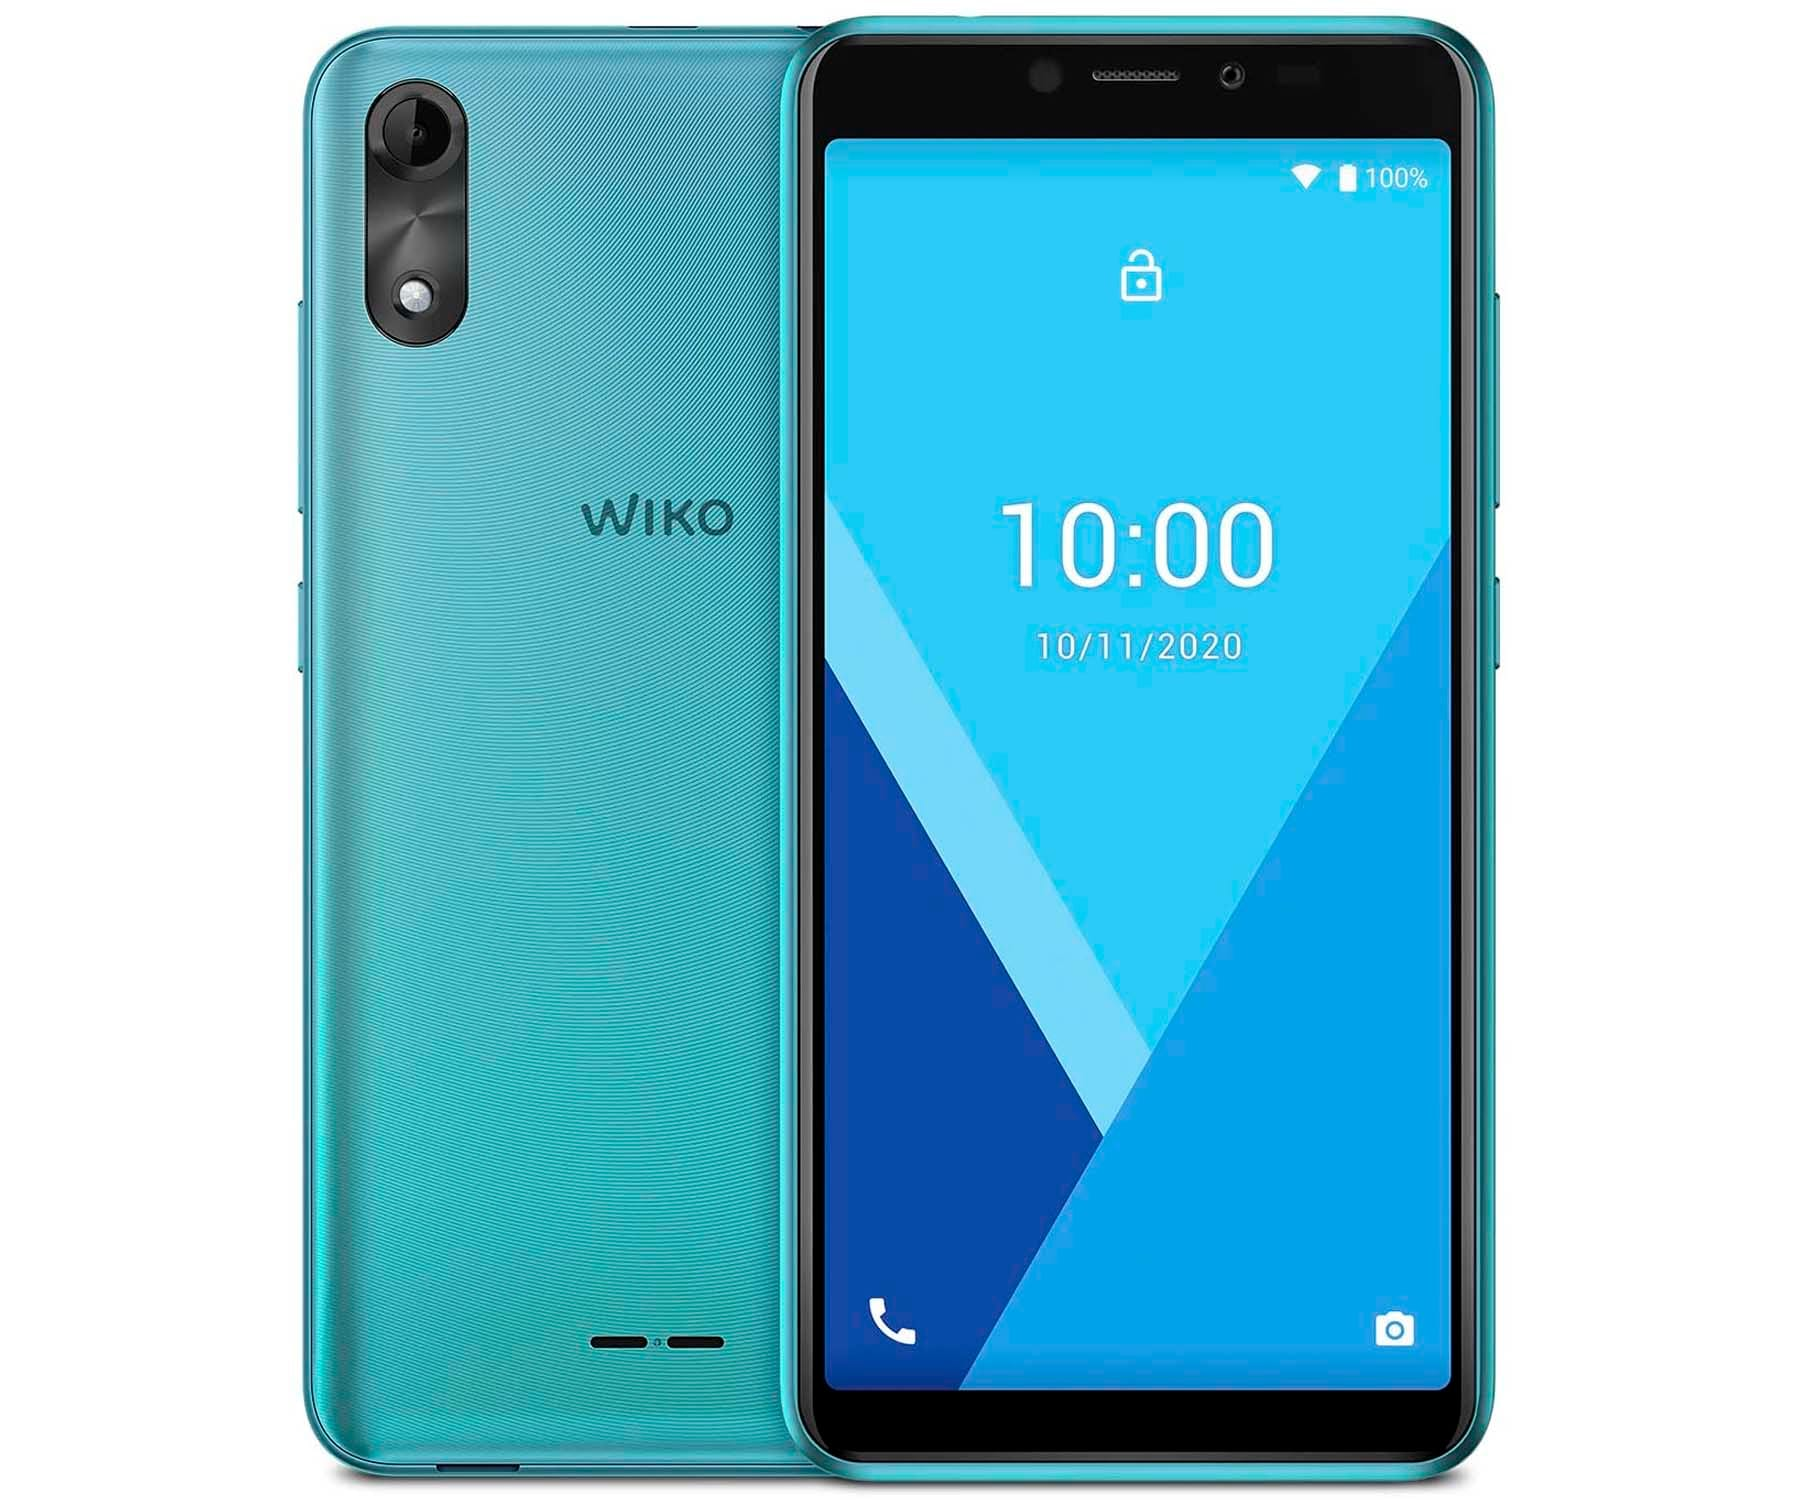 WIKO Y51 MENTA MÓVIL 3G DUAL SIM 5.45'' TN FWVGA+ QUADCORE 16GB 1GB RAM CAM 5MP SELFIES 5MP